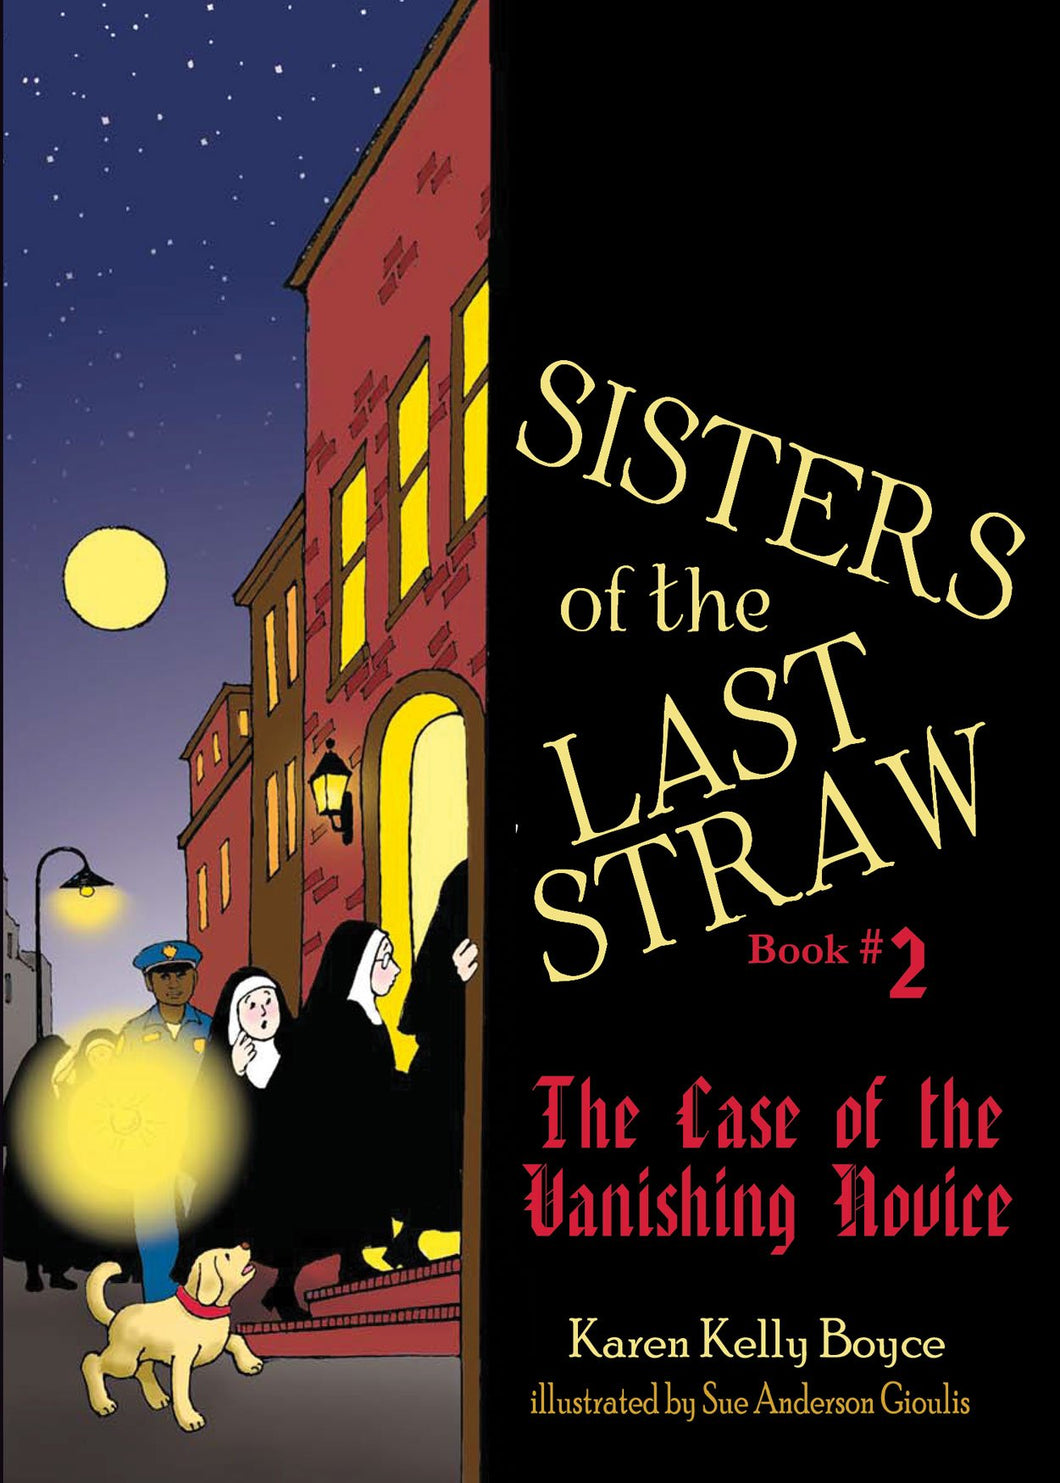 Sisters of the Last Straw Vol 2: The Case of the Vanishing Novice